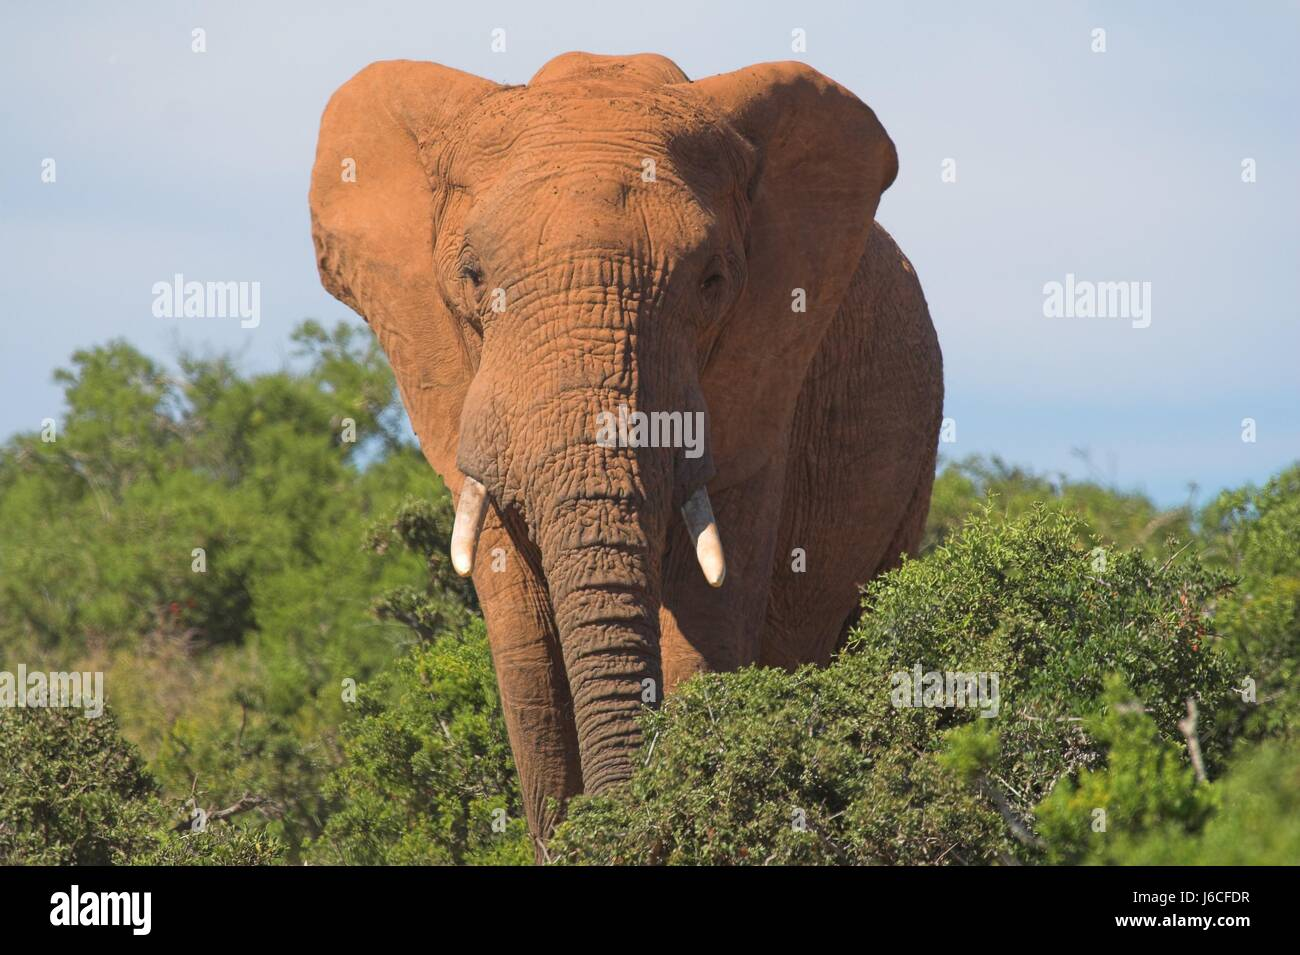 animal wild elephant ivory strong tusks tusk elephants legs travel big large - Stock Image